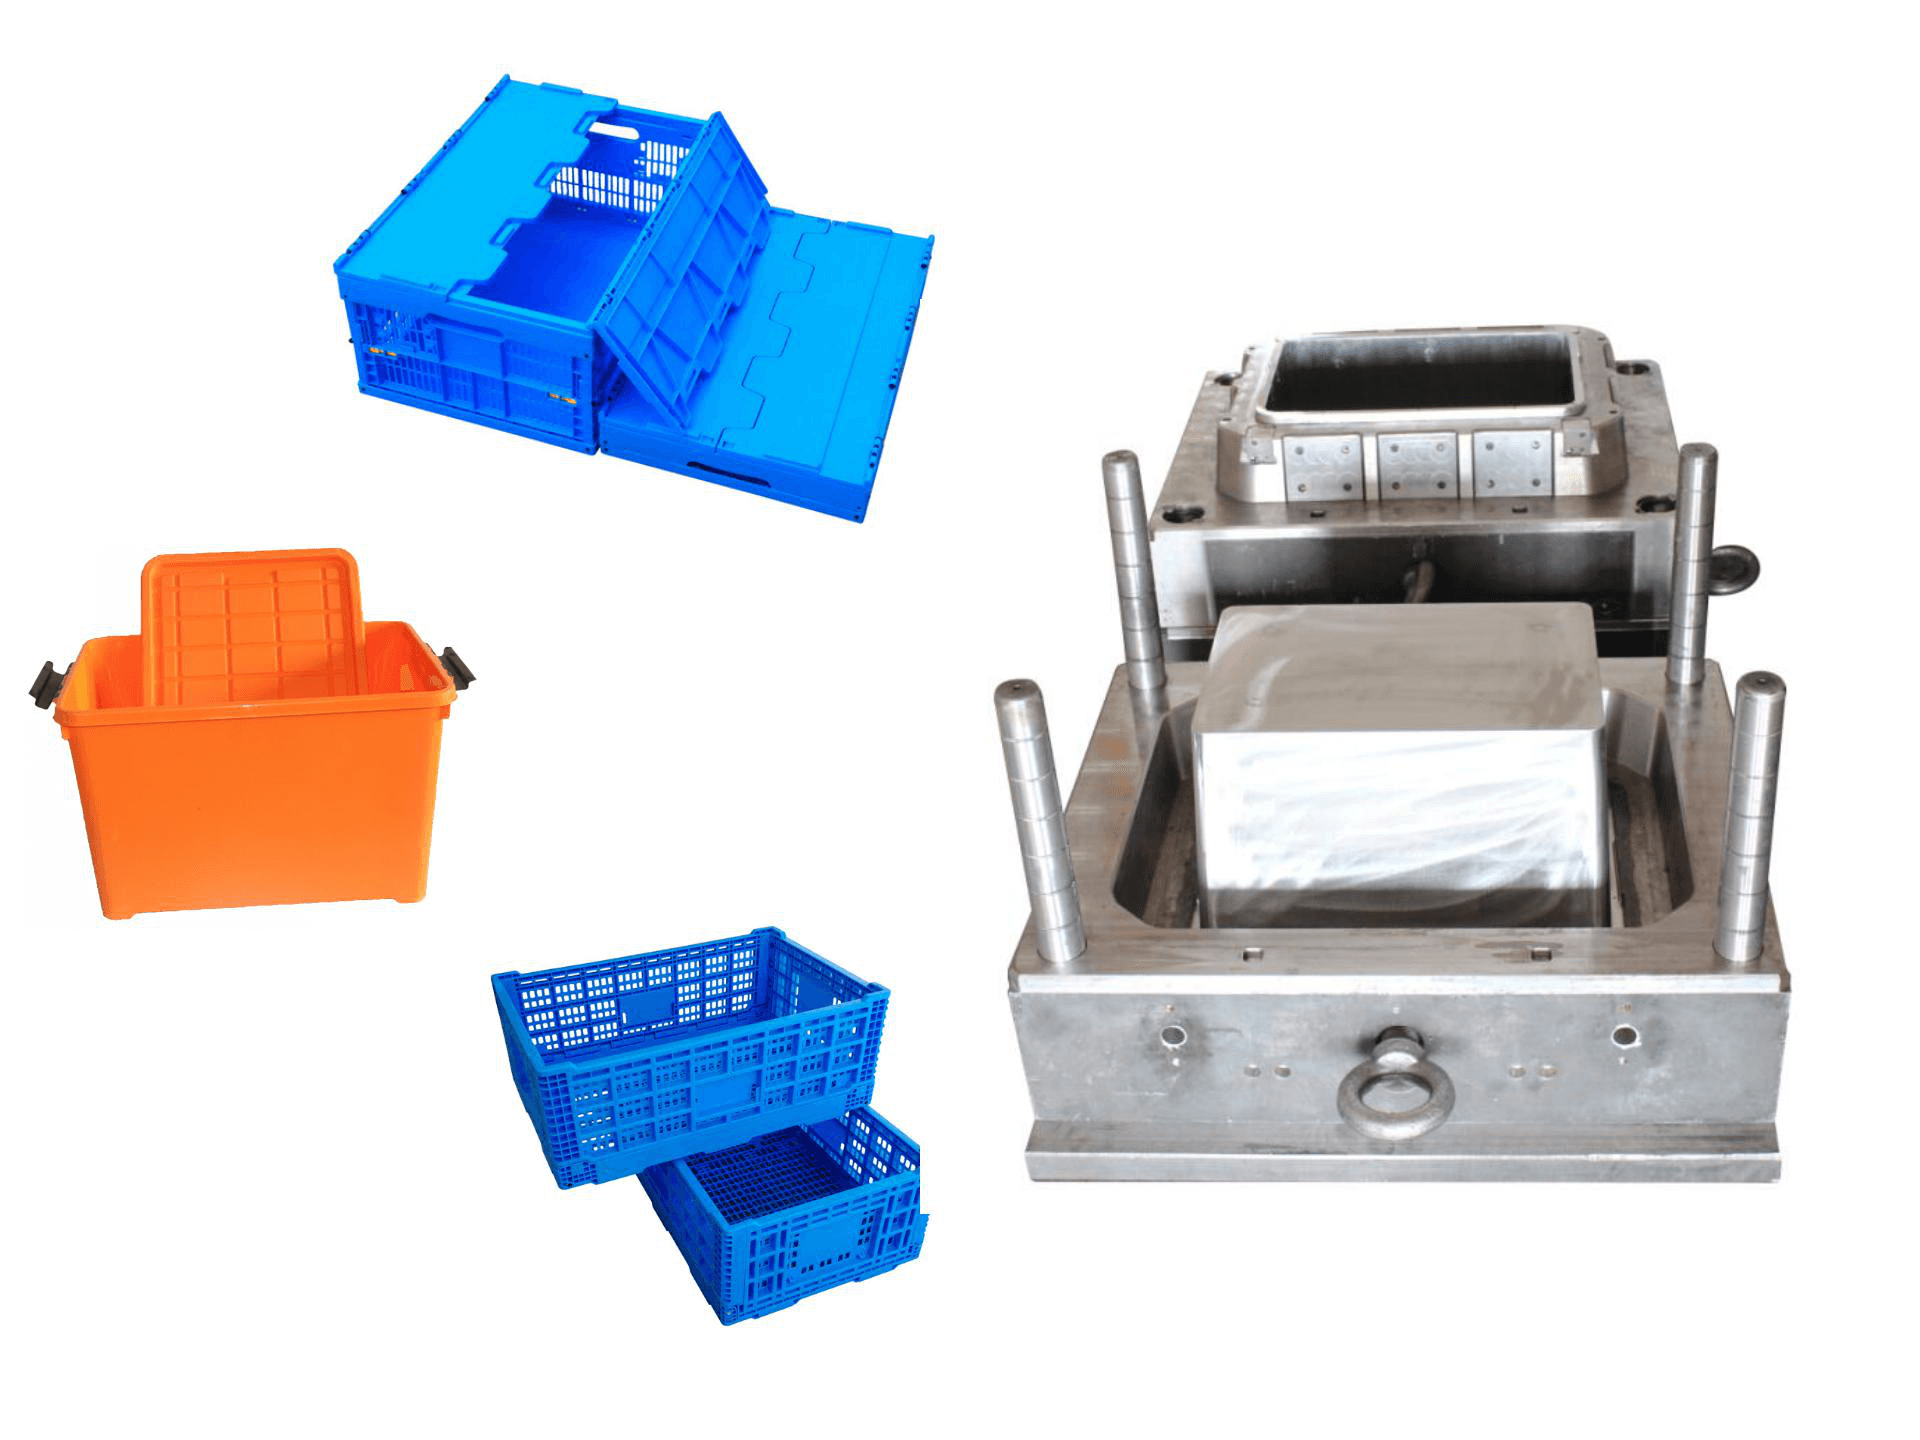 Plastic Molded Parts Manufacturer: Difference Between Thermoforming and Extrusion